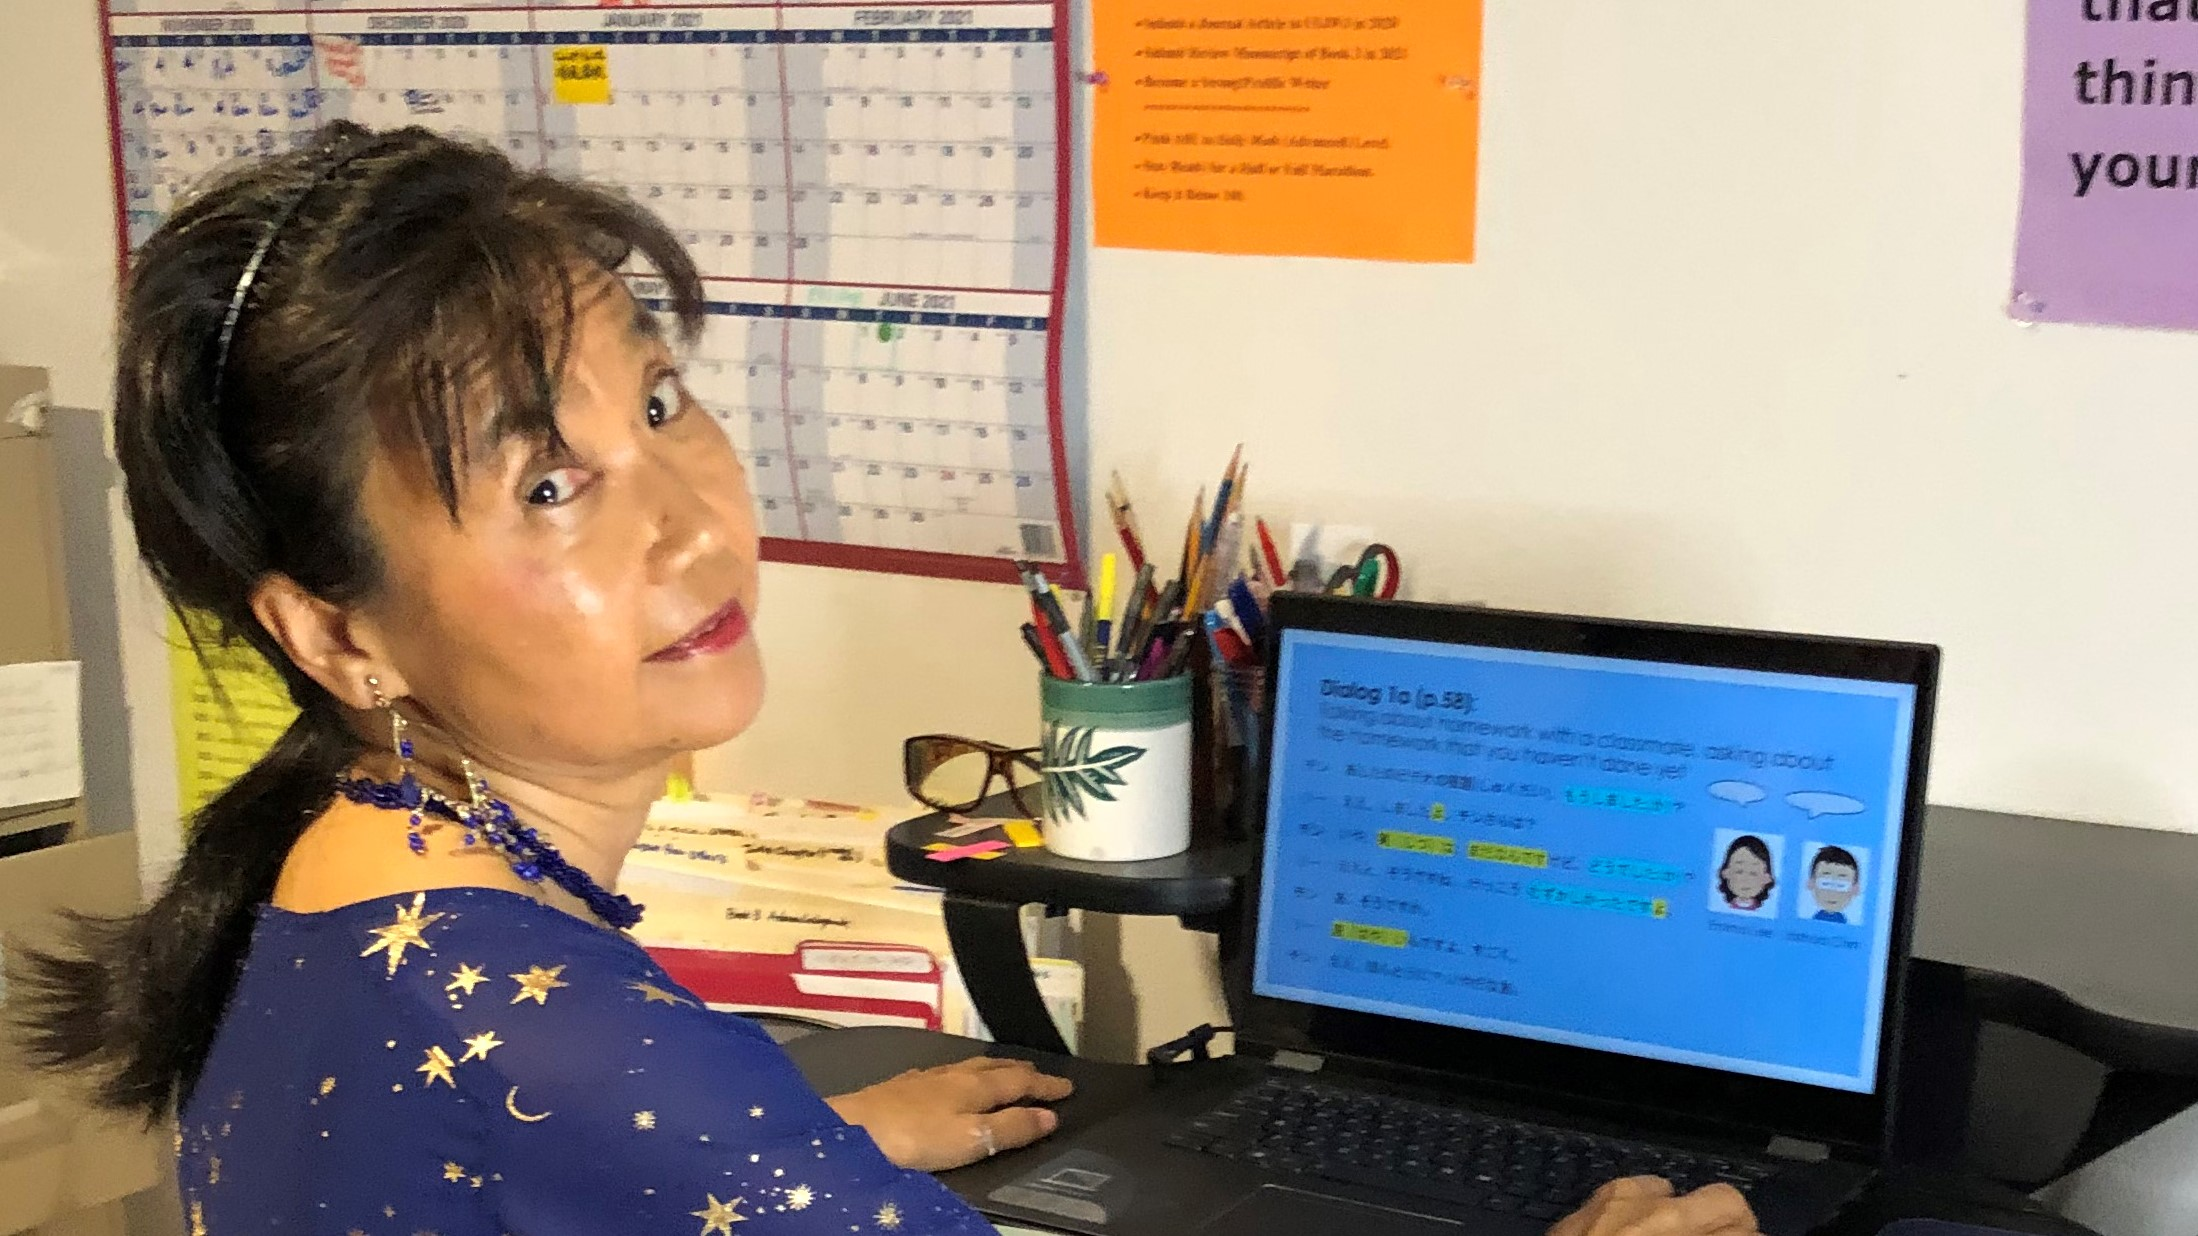 Yoshiko Okuyama in her office with a class up on the computer screen.